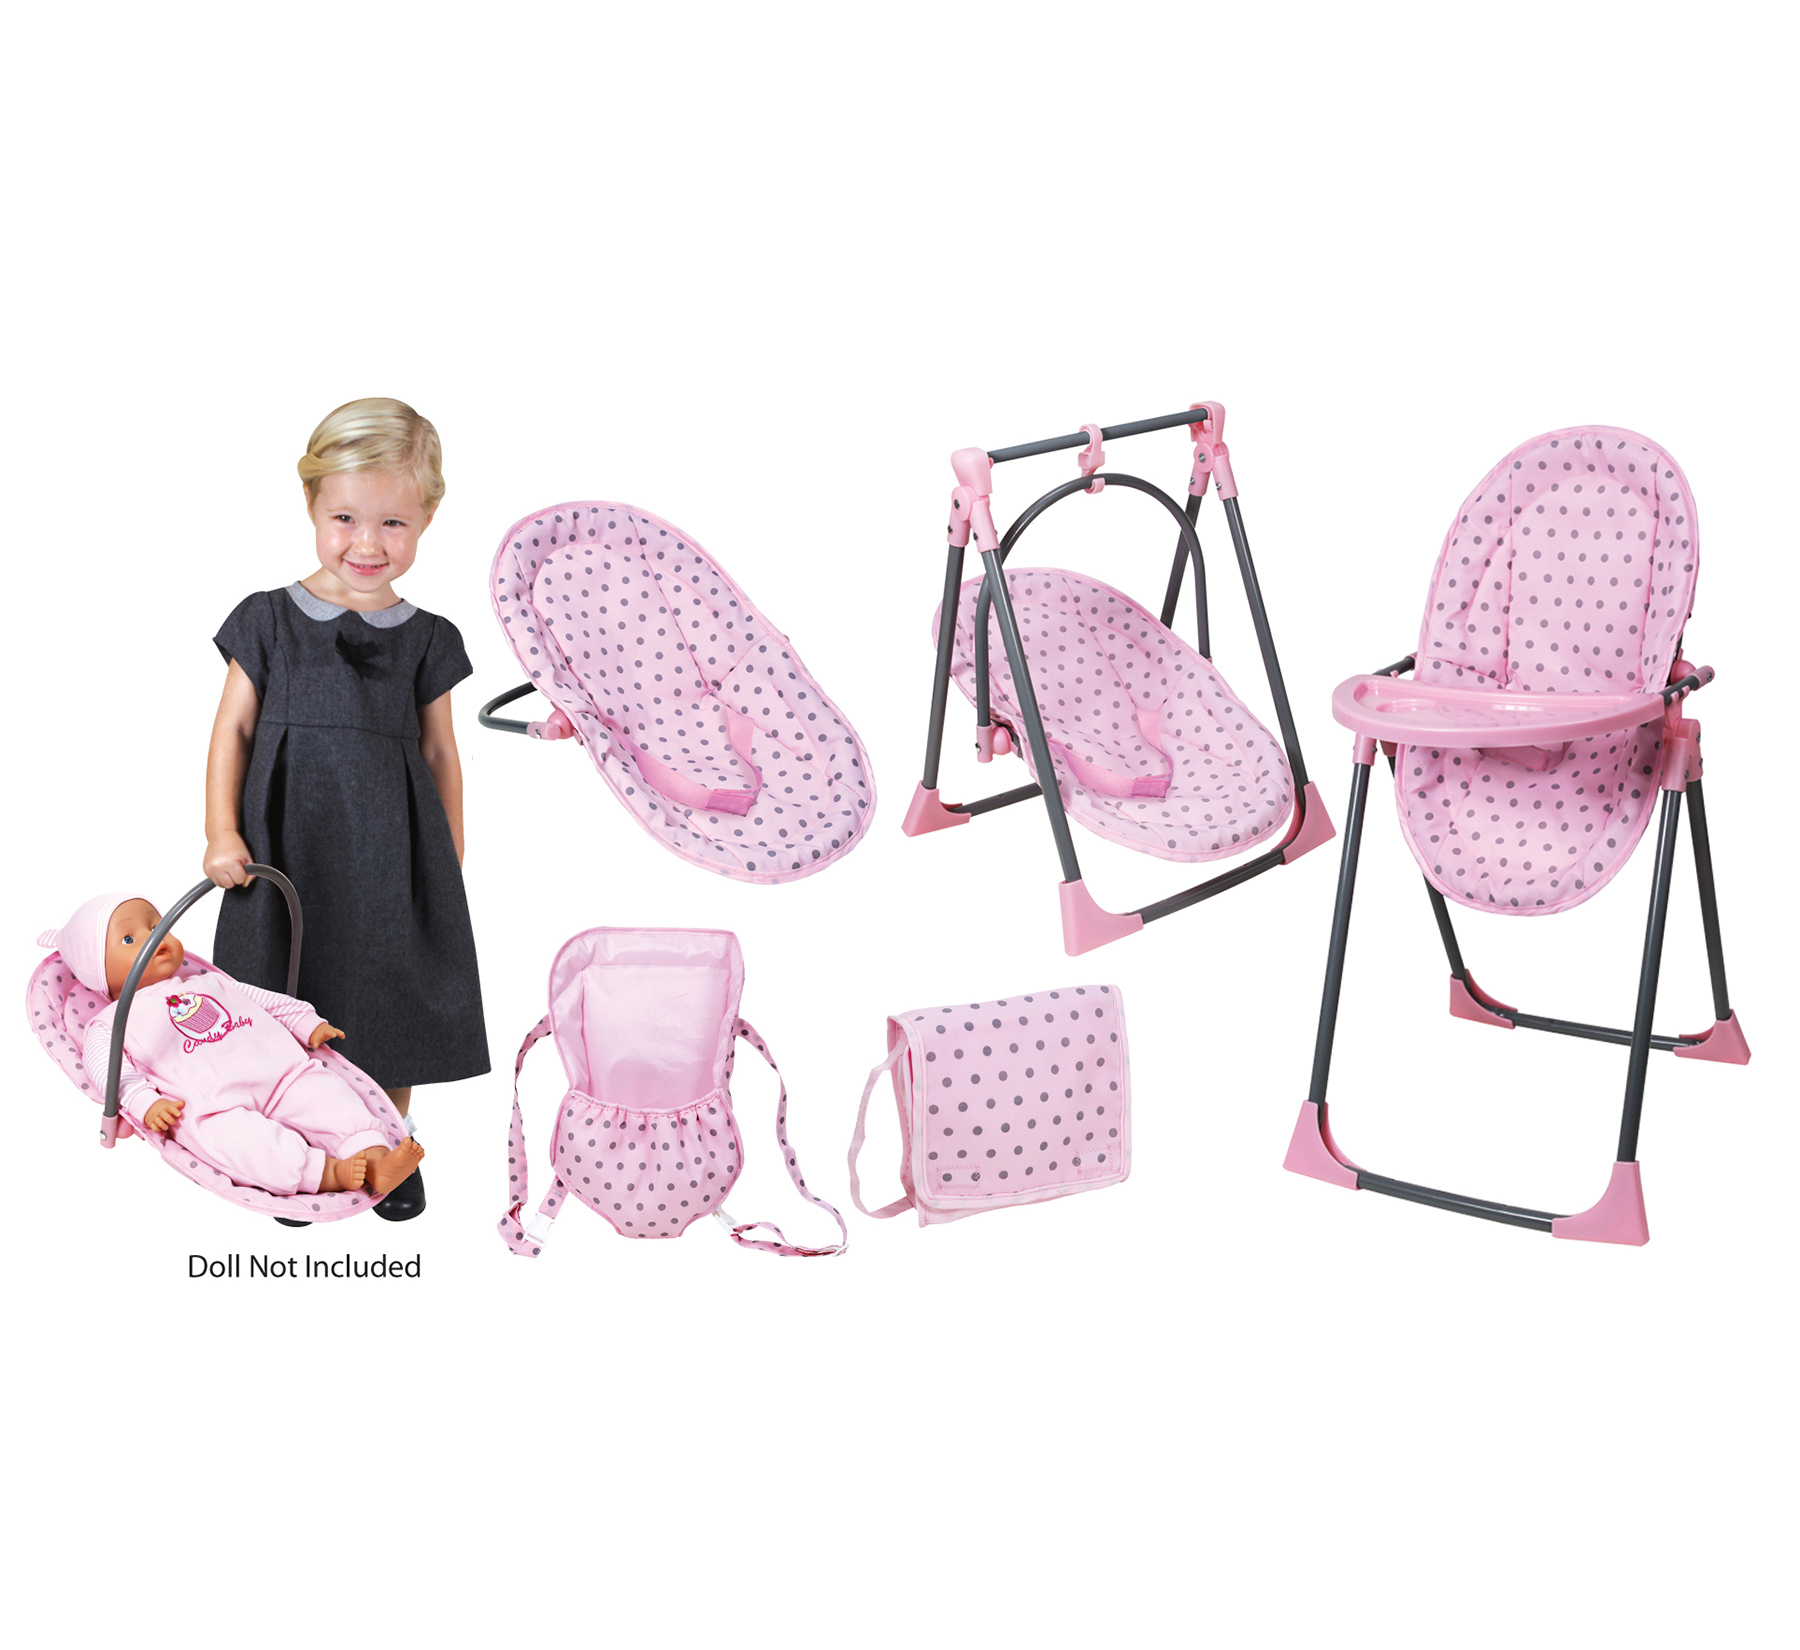 Lissi Baby Doll 6-in-1 Convertible Highchair Play Set